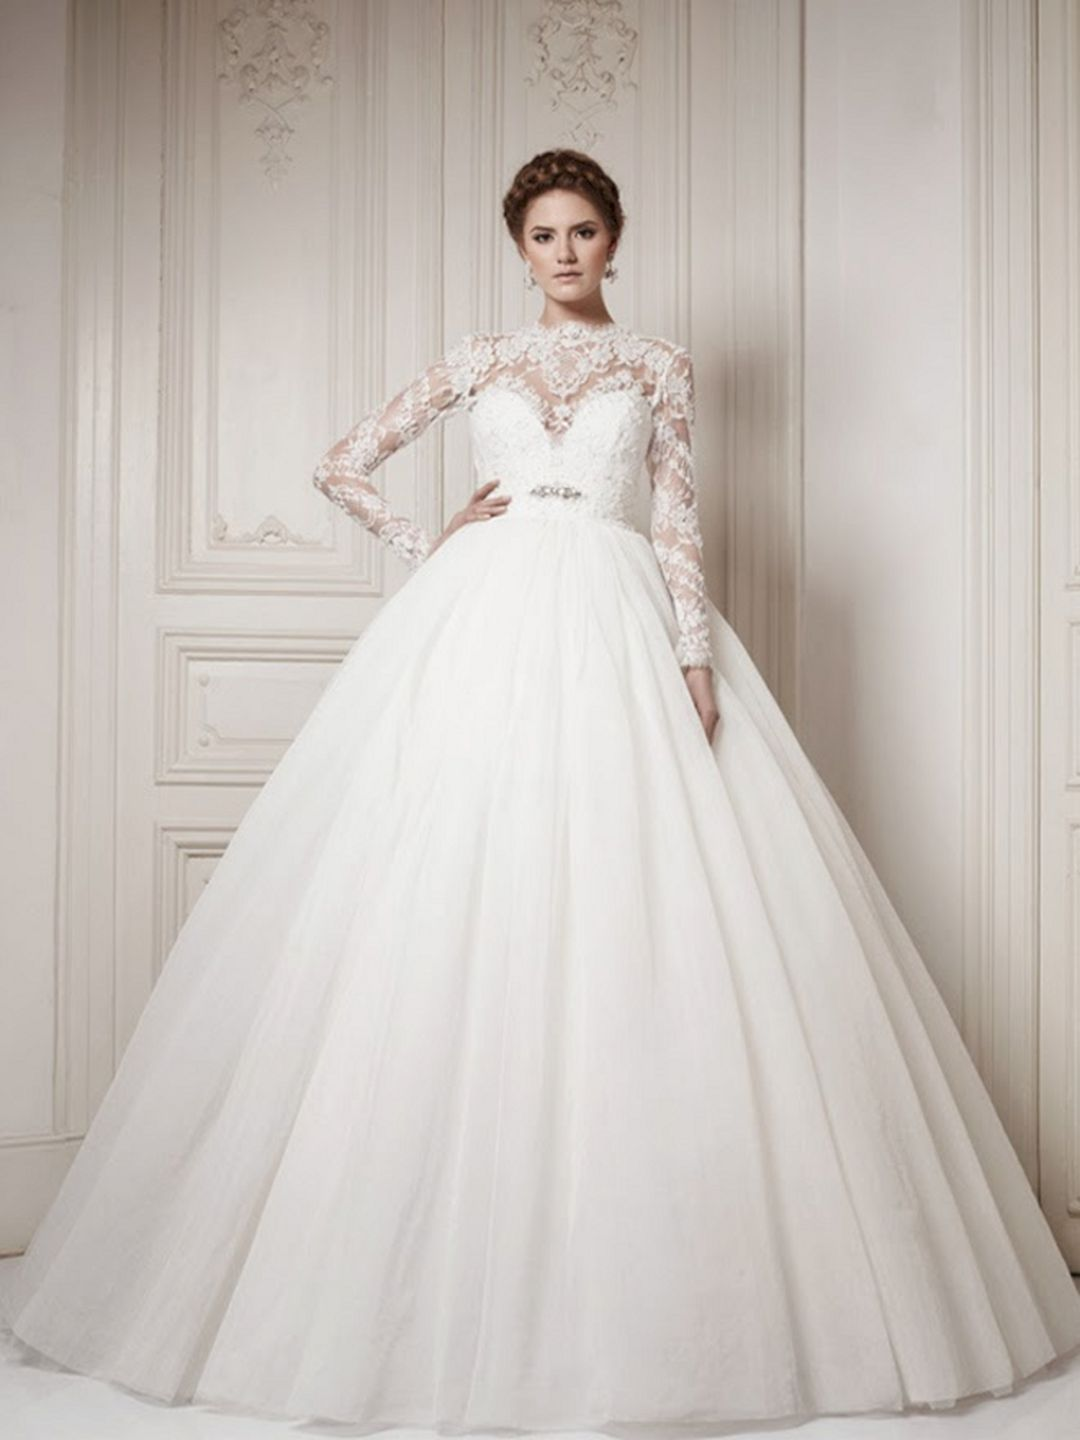 Adorable 25+ Cozy Winter Bridal Gowns With Sleeves For Beautiful Bride  https://oosile.com/25-cozy-winter-bridal-gowns-with-sleeves-for-beautiful-bride-15557